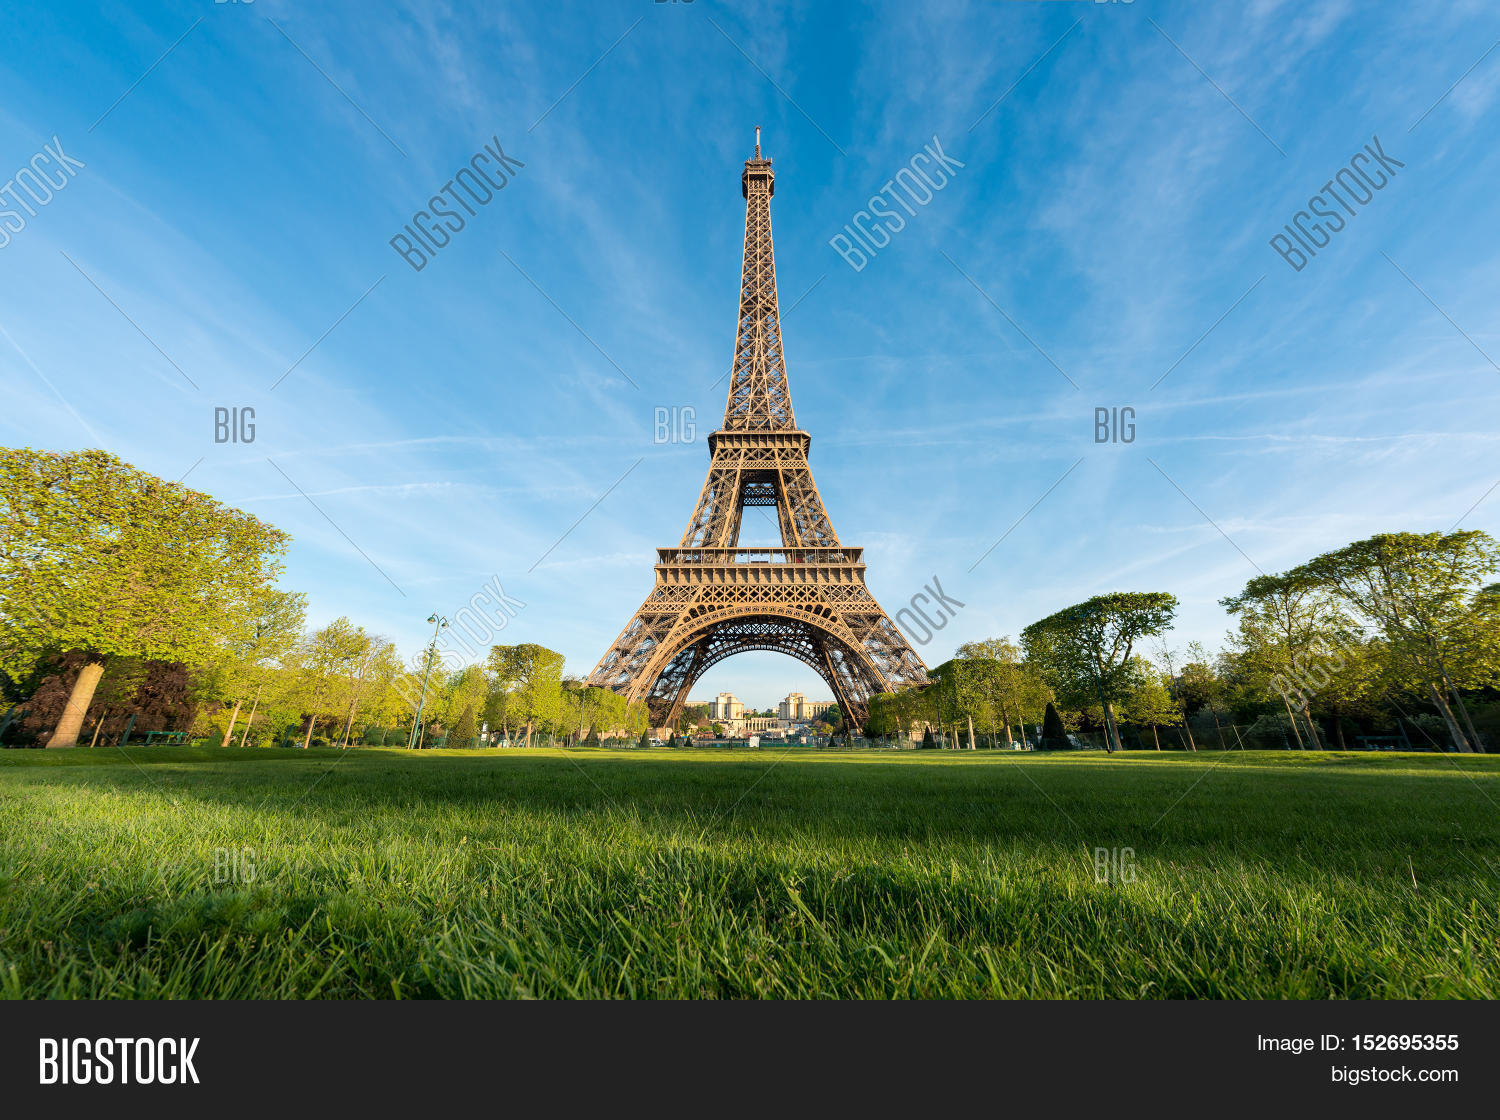 sunrise eiffel tower image photo free trial bigstock